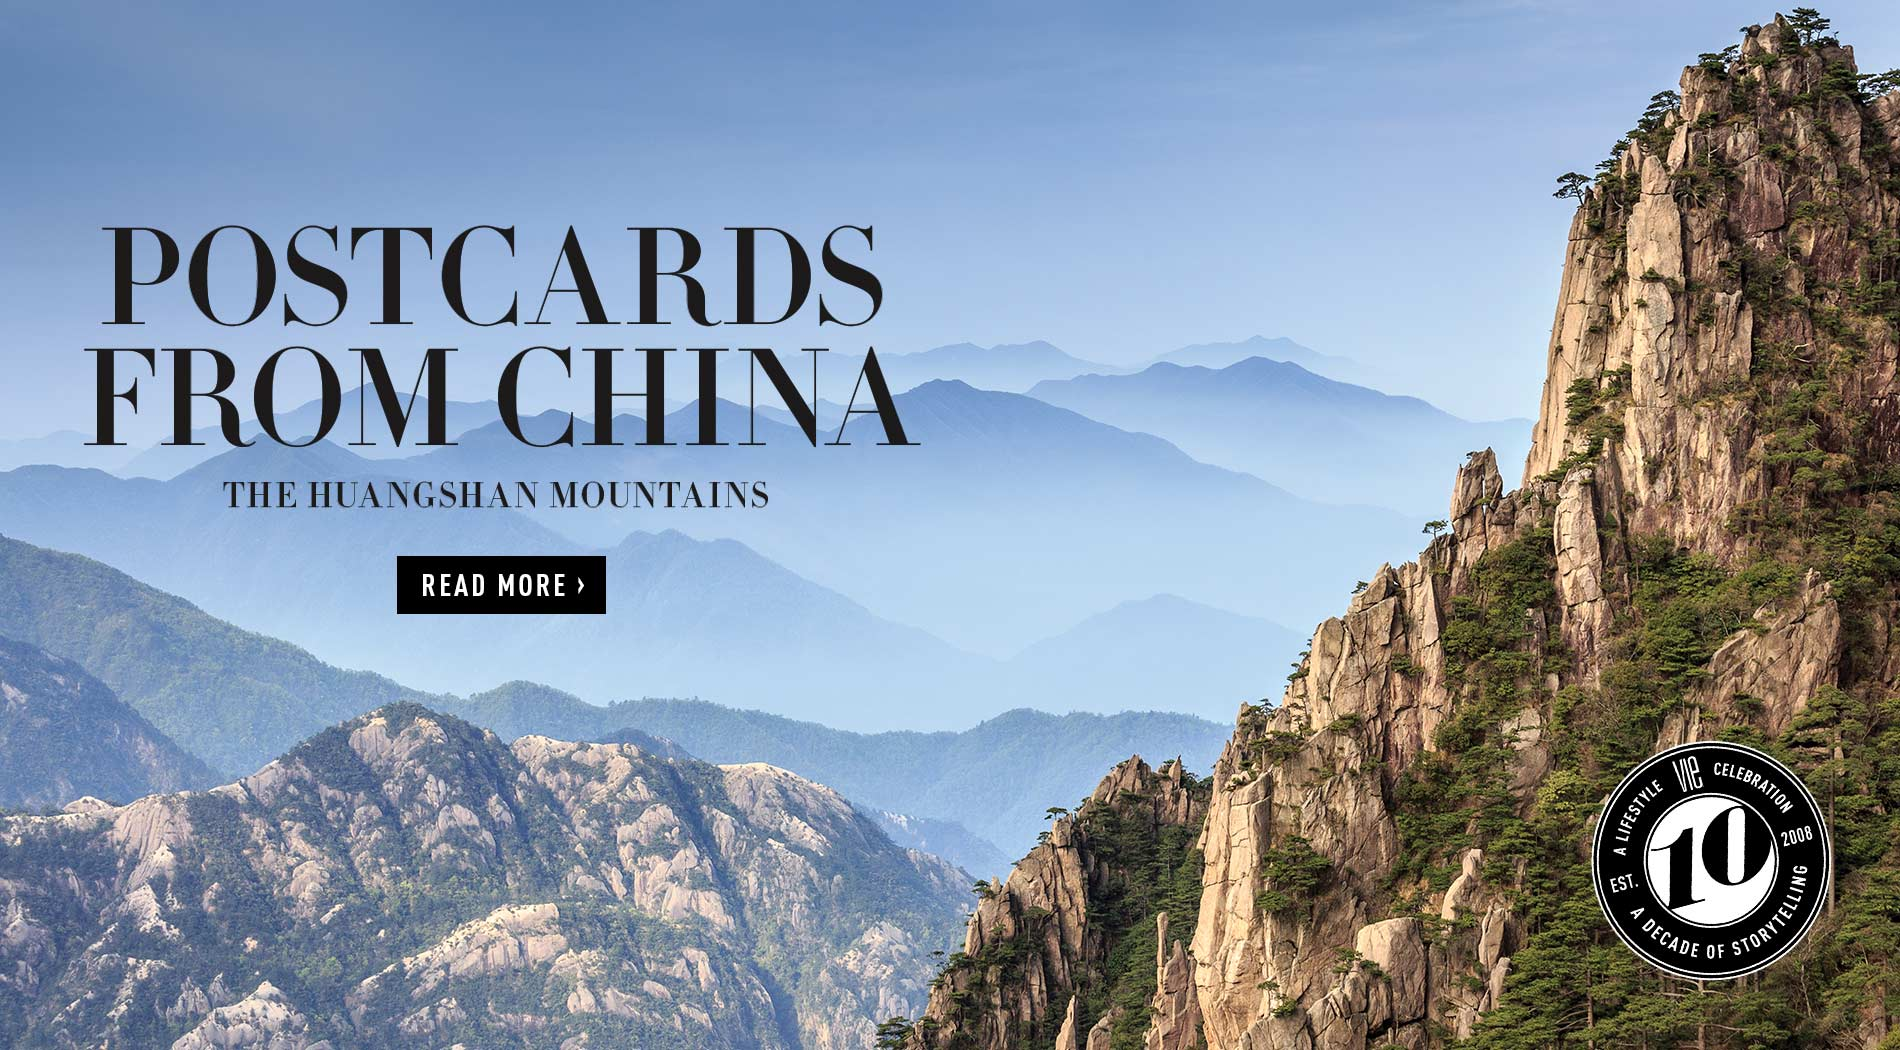 VIE Magazine - Special Anniversary Travel Edition - December 2018 - Huangshan Mountains in China